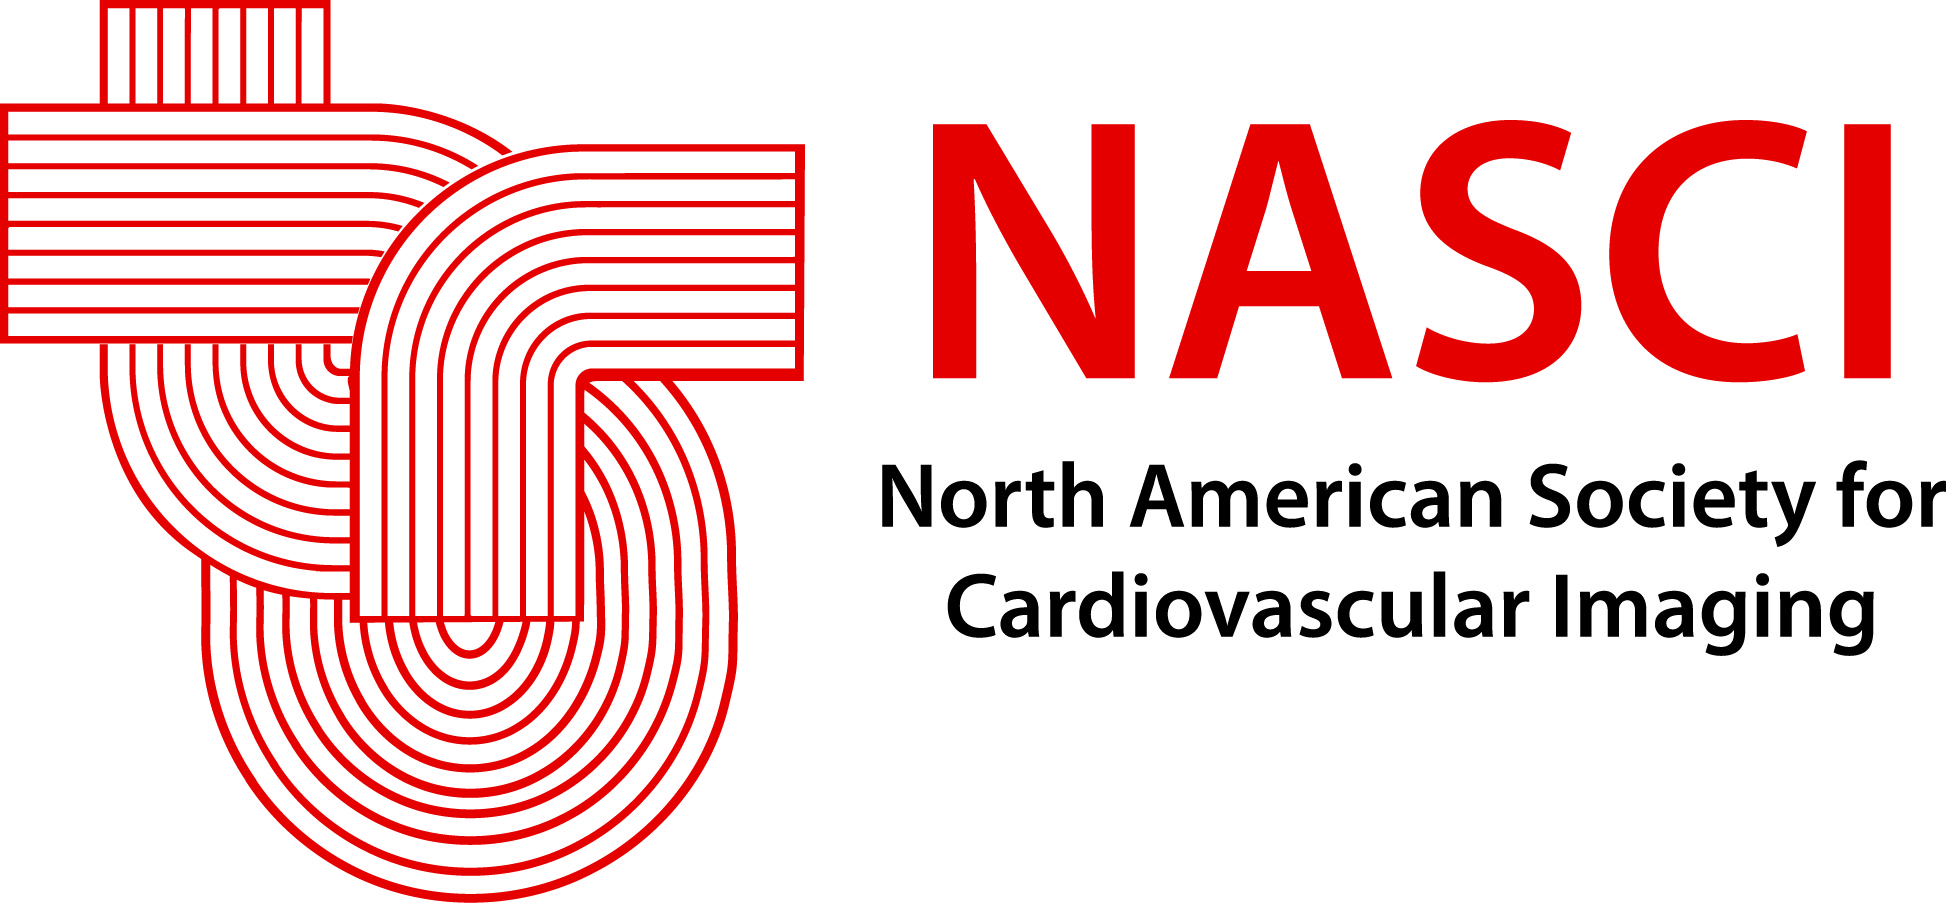 North American Society for Cardiovascular Imaging